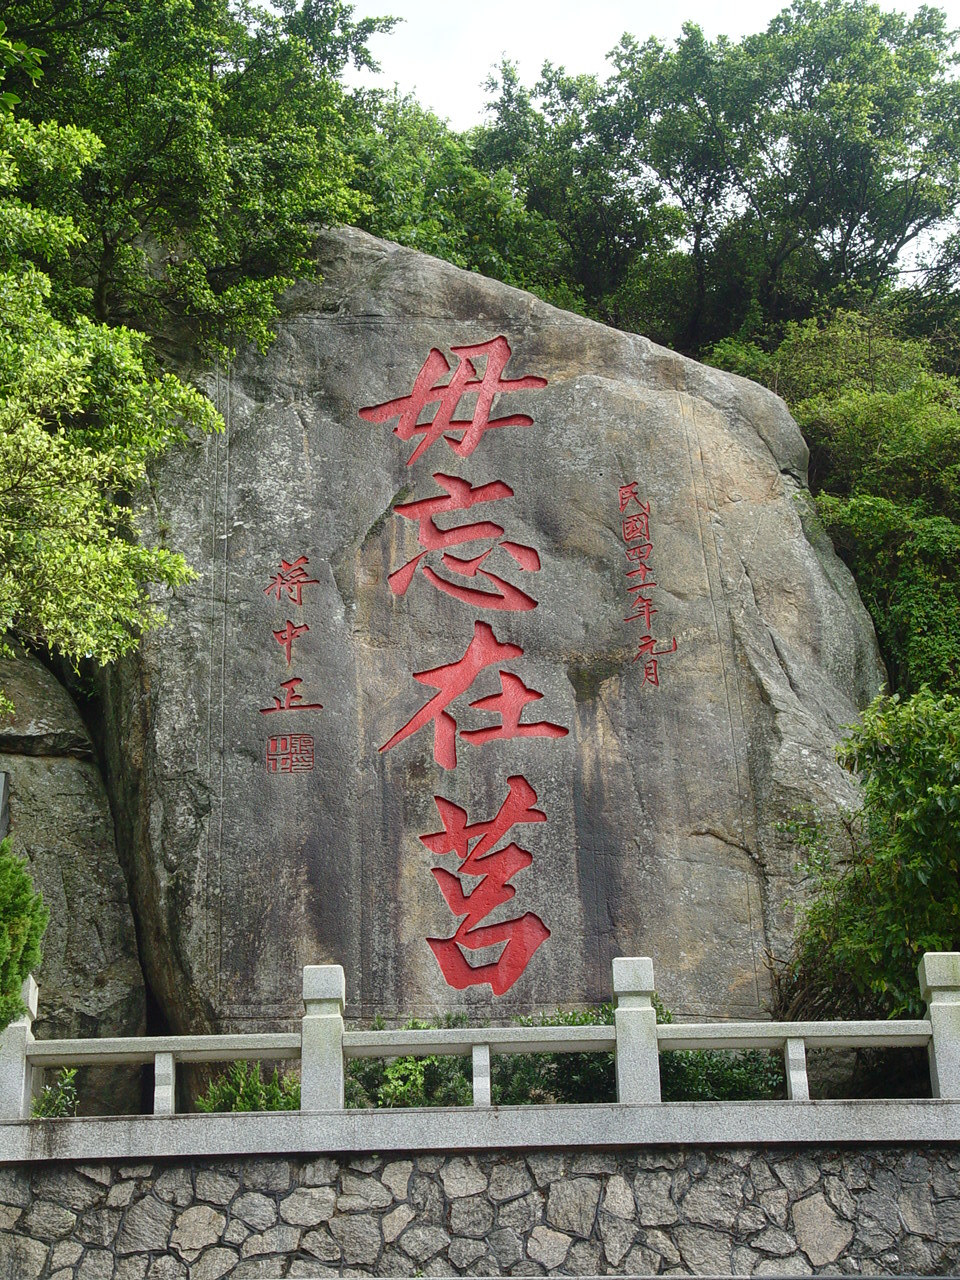 Calligraphy by former President Chiang Kai-shek etched on a rock in Kinmen reads,